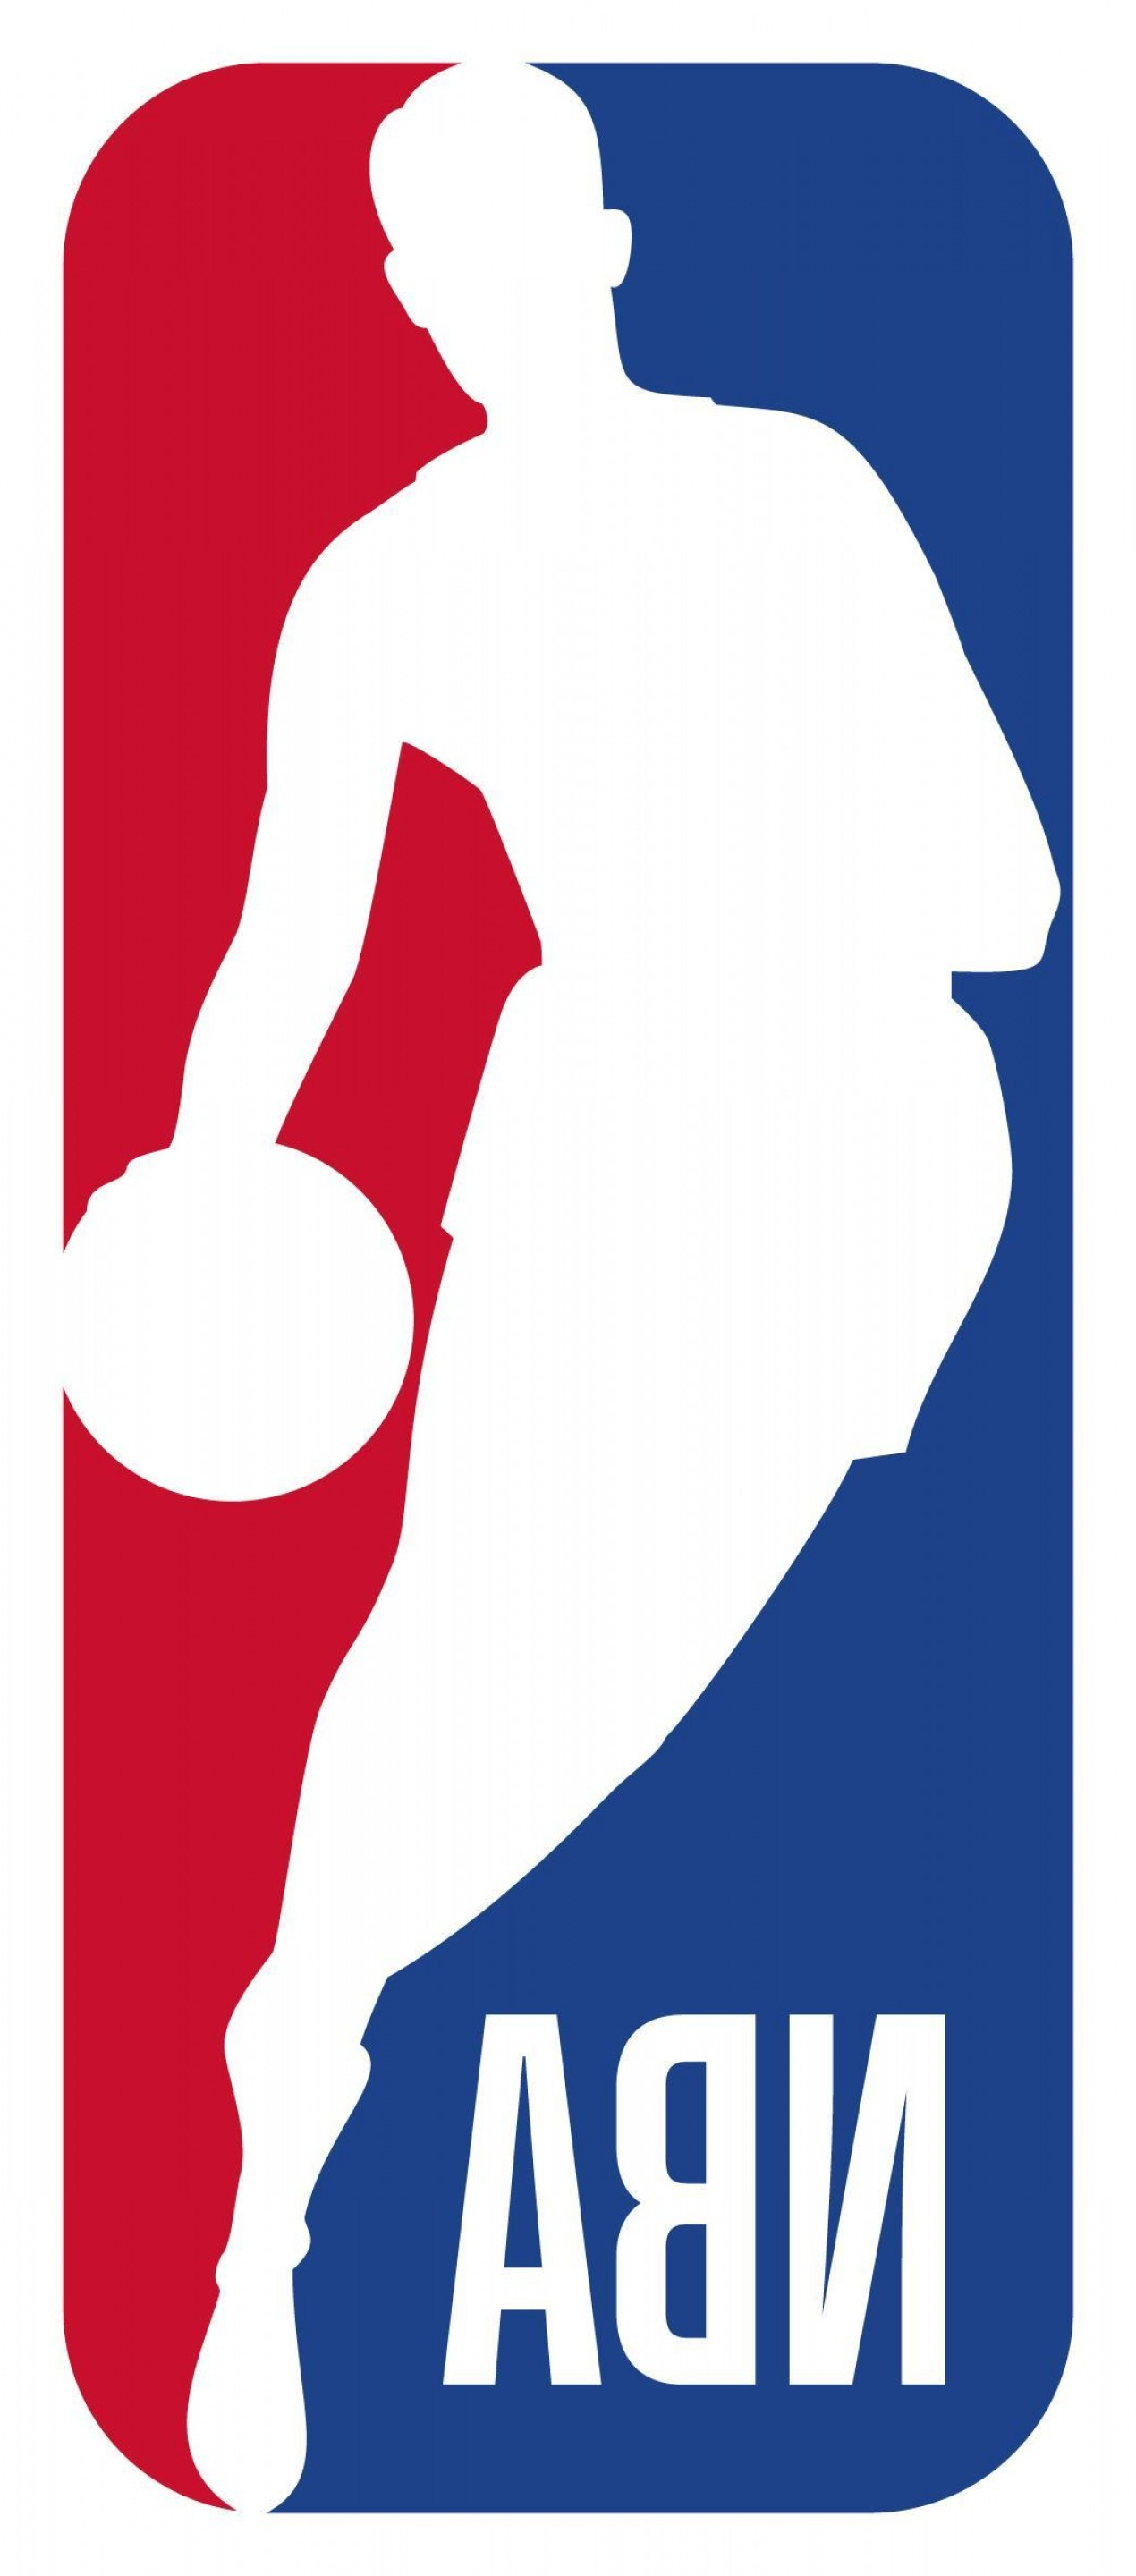 NBA Finals Logo Vector: First Look Nbas Refreshed Logo Season